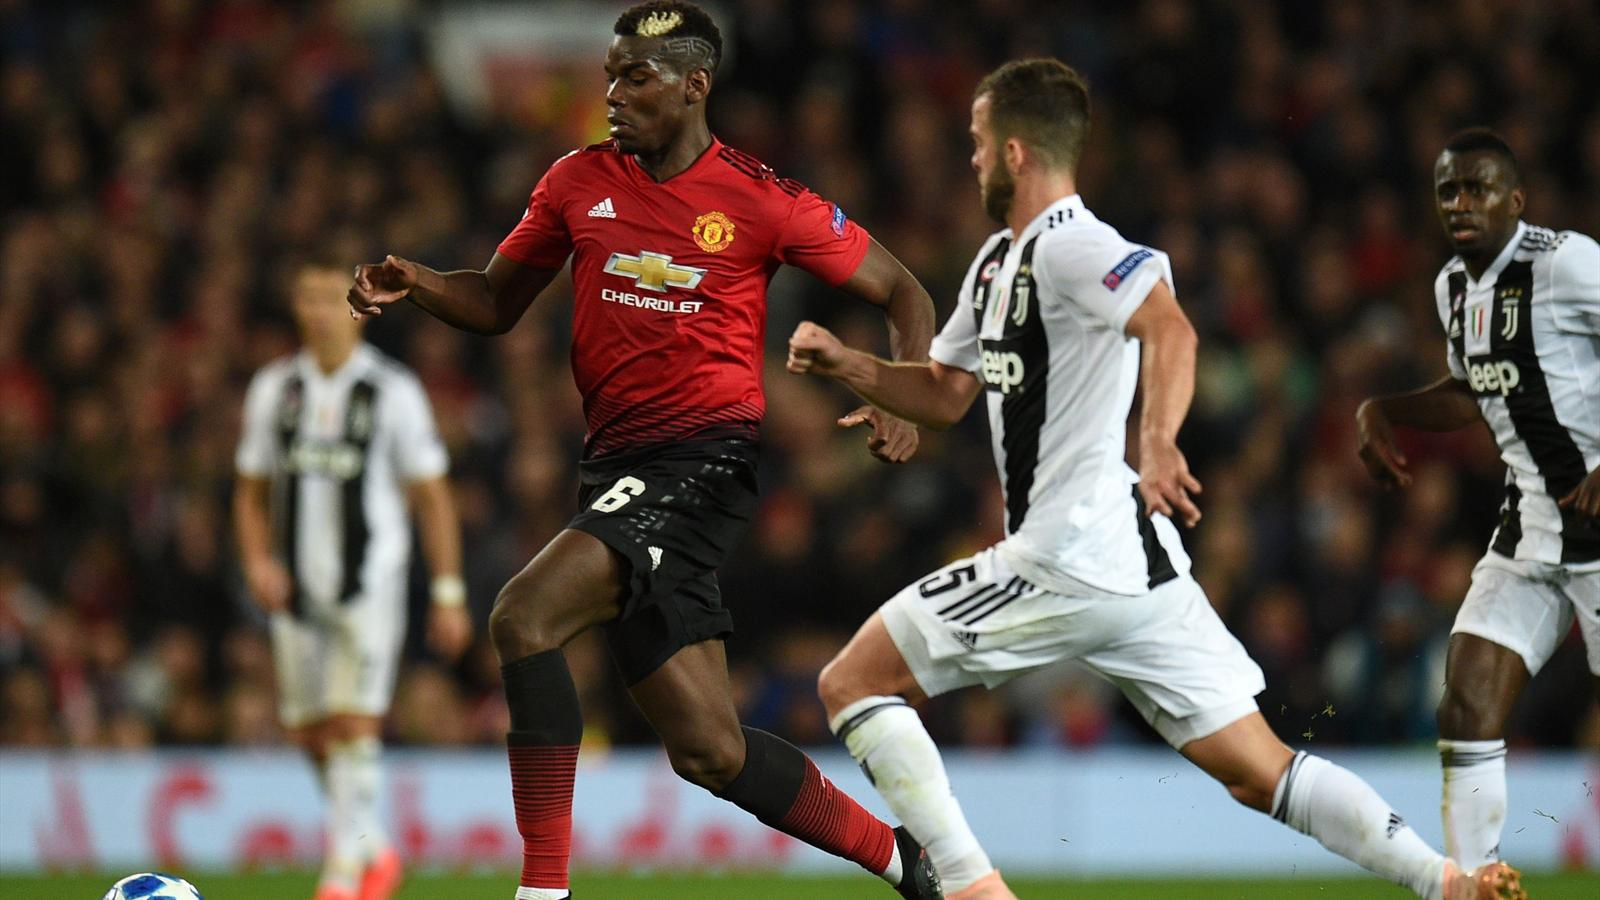 """Round Table: Paul Pogba """"Welcome back"""" at Juventus, Eden Hazard picks up the flirtation with Real Madrid - Football again"""